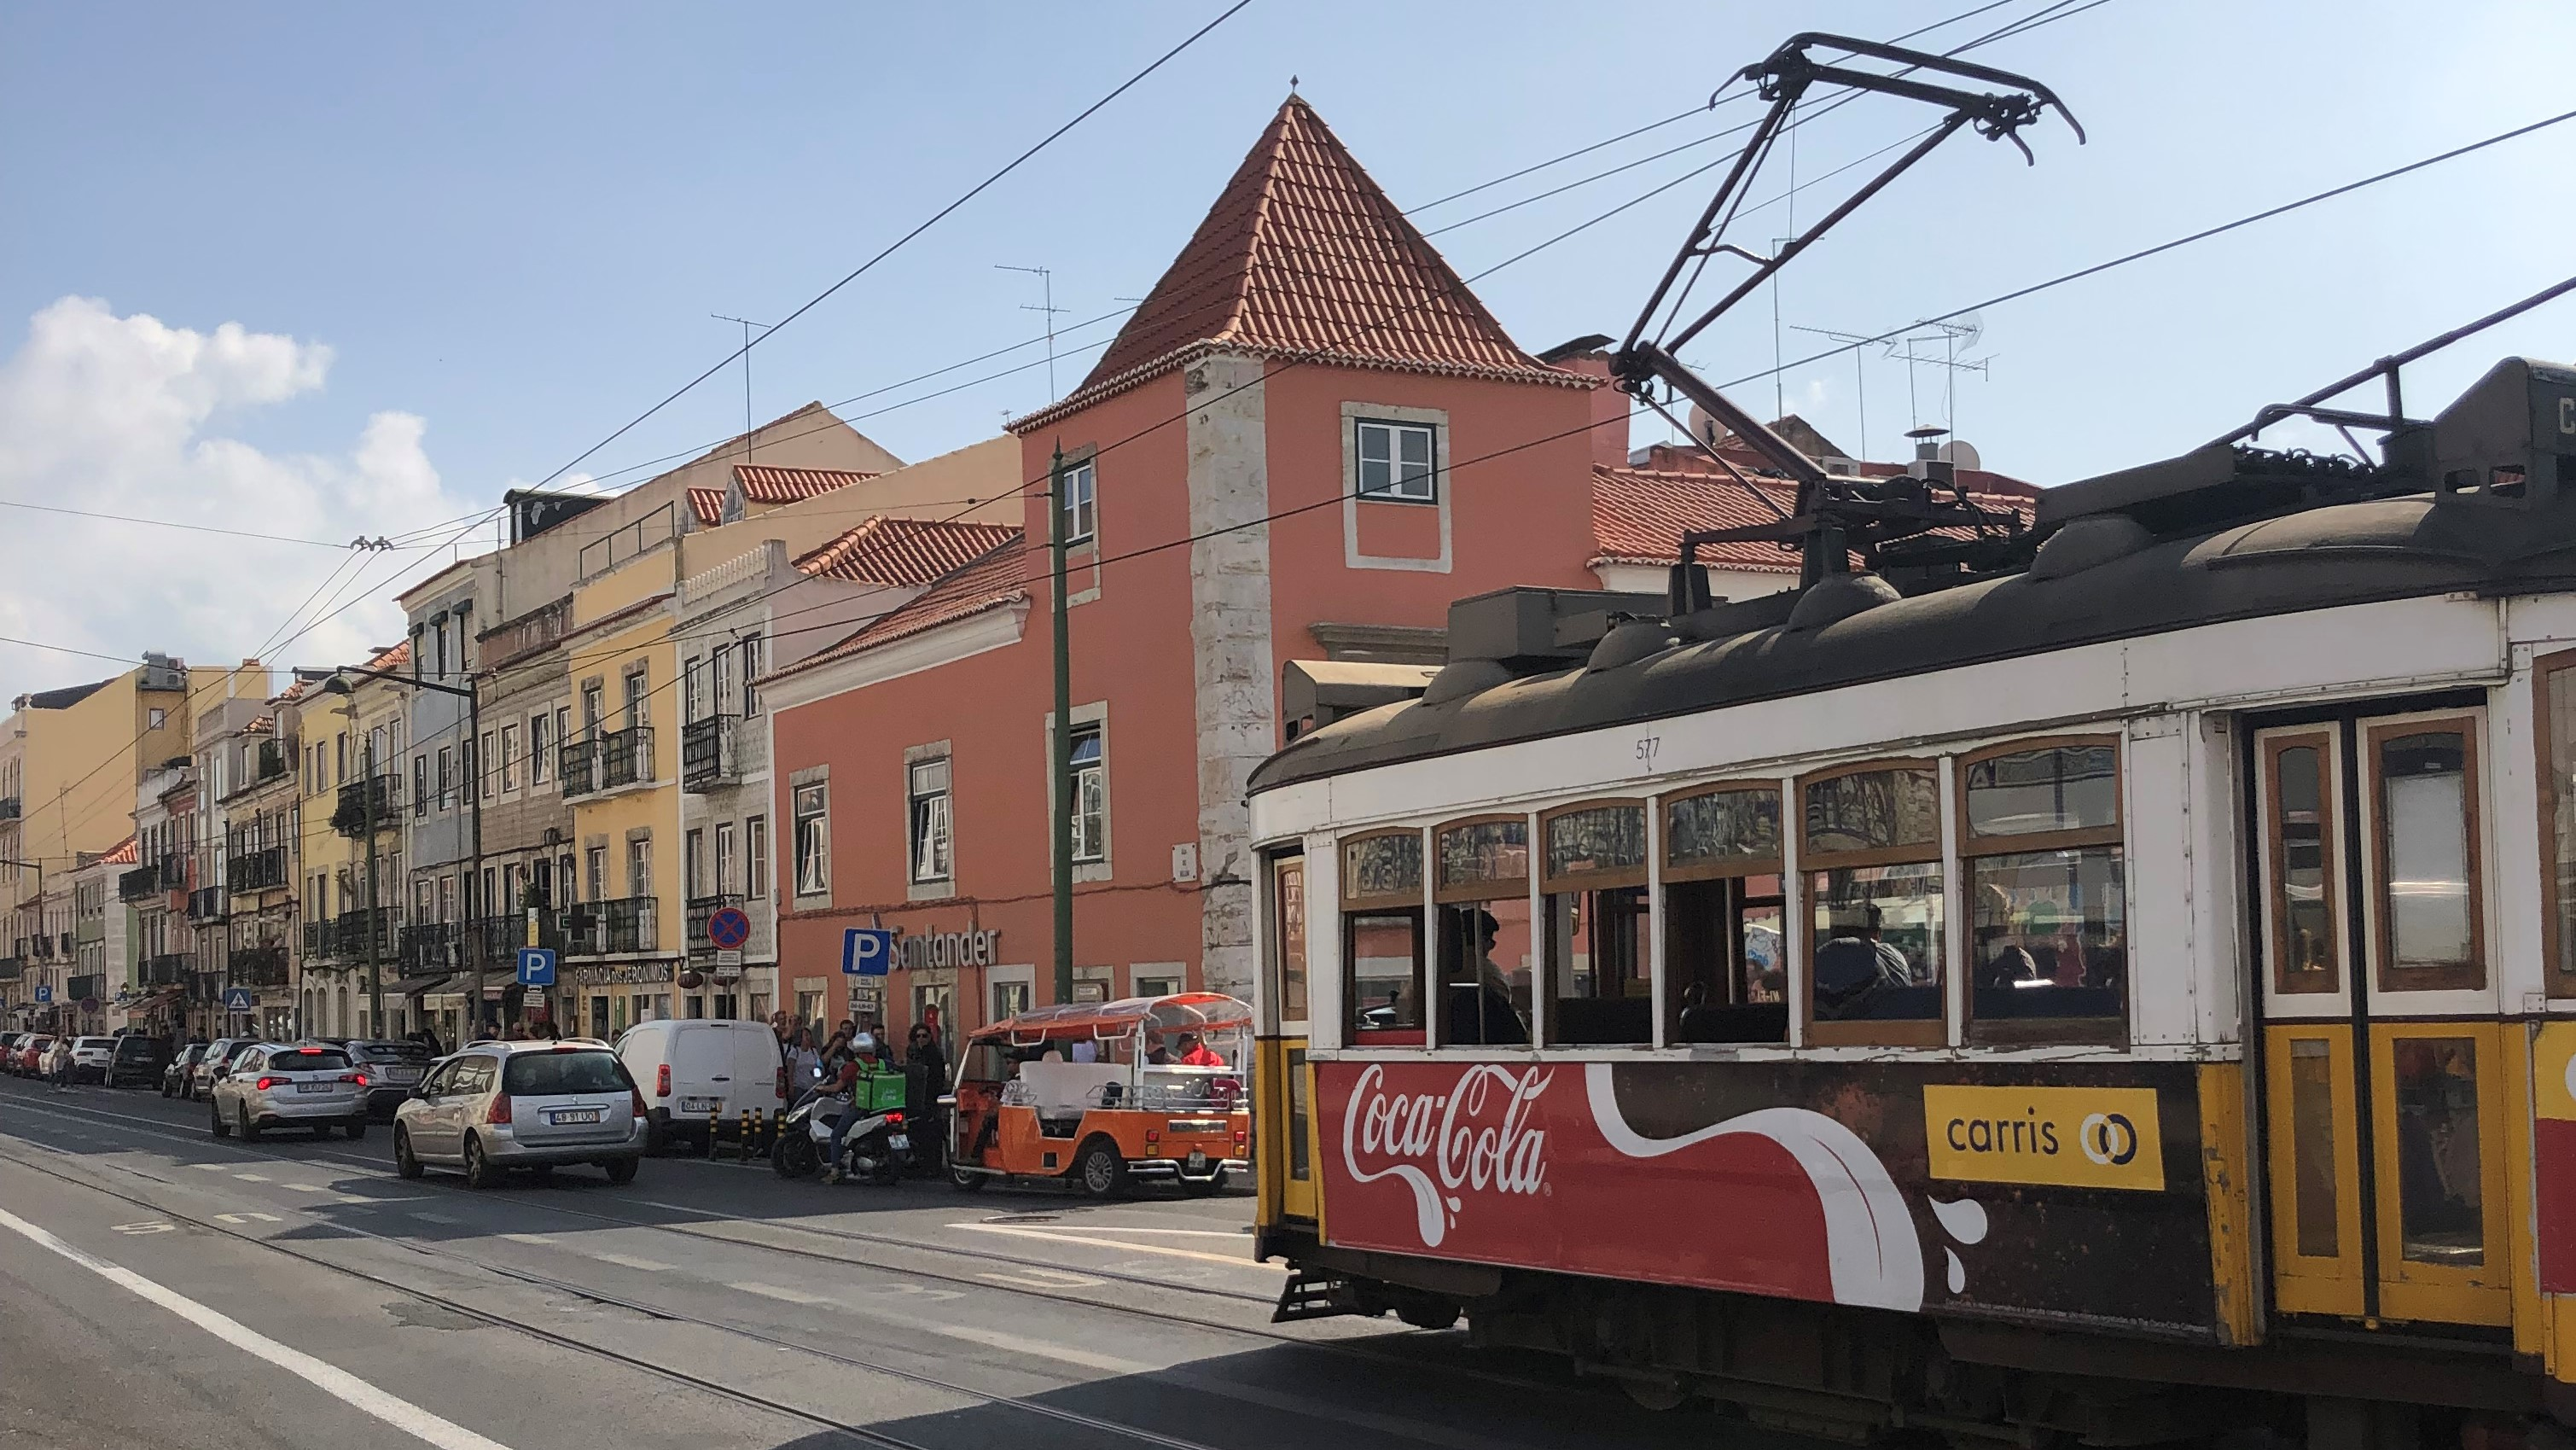 The street near the Pastéis de Belém bakery and a Lisbon cable car.